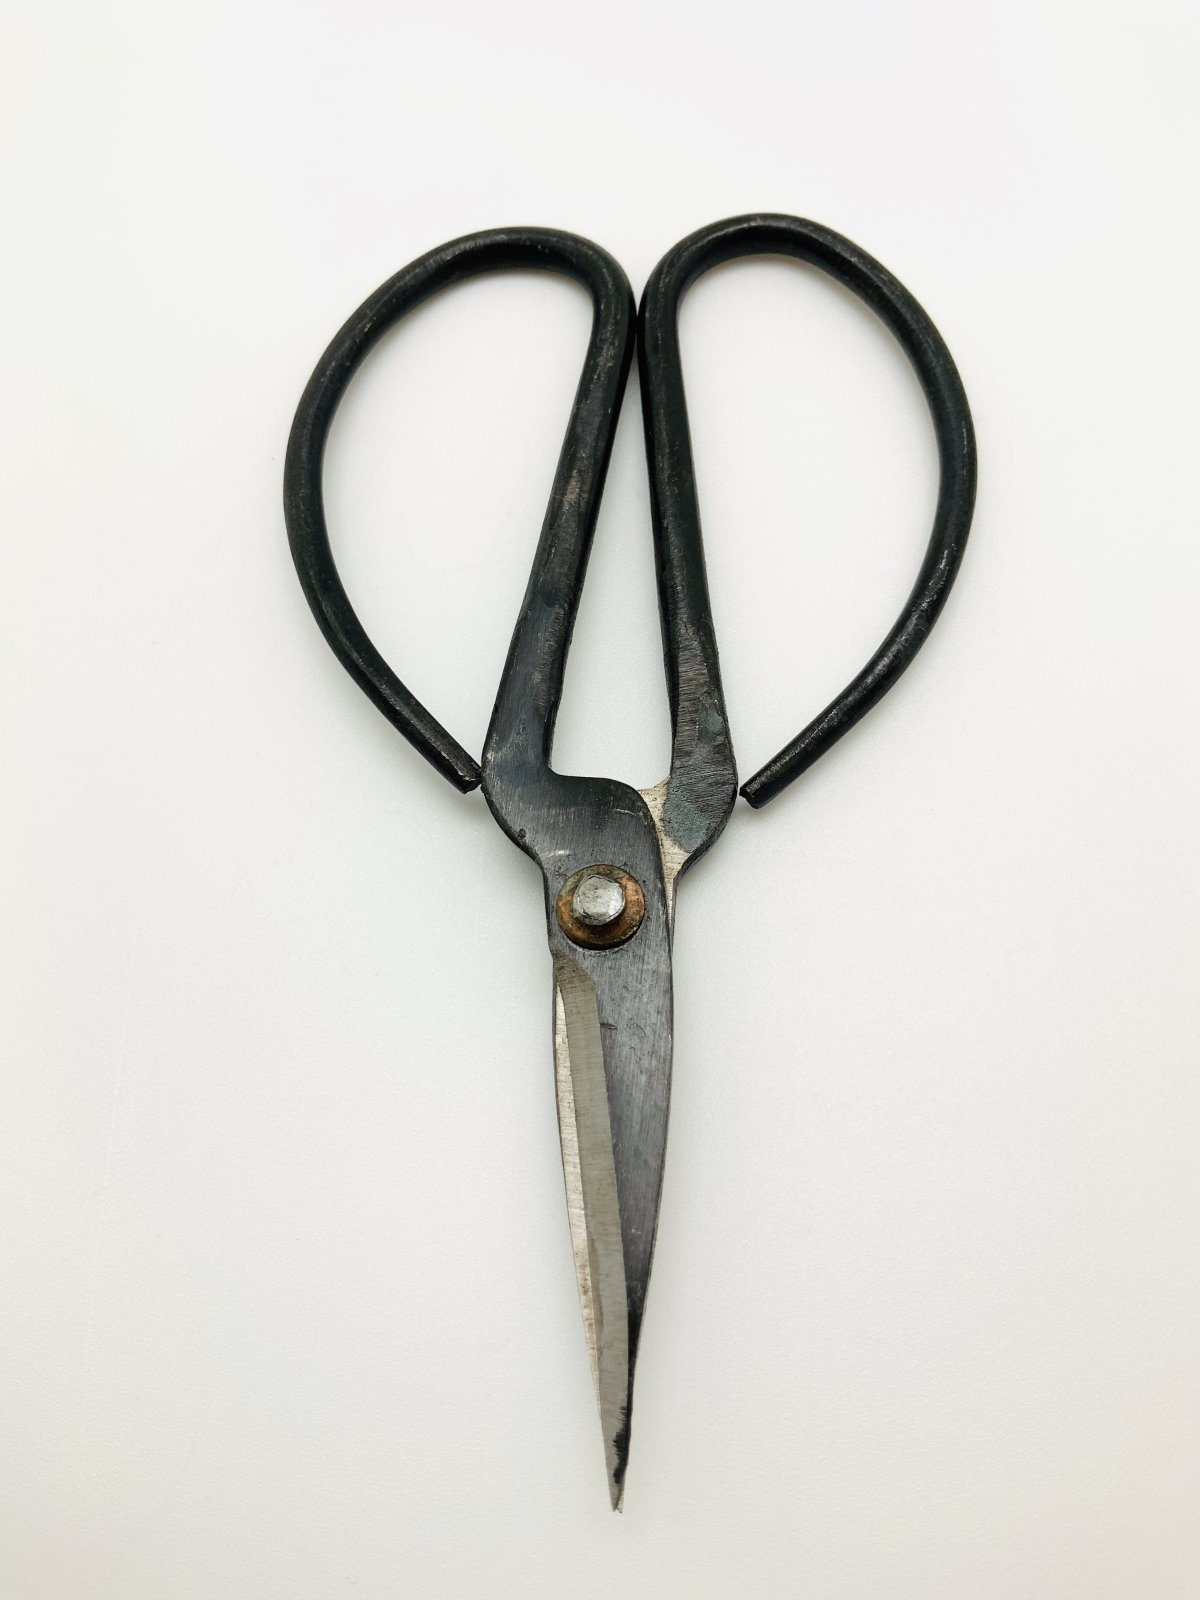 Small Forged scissors